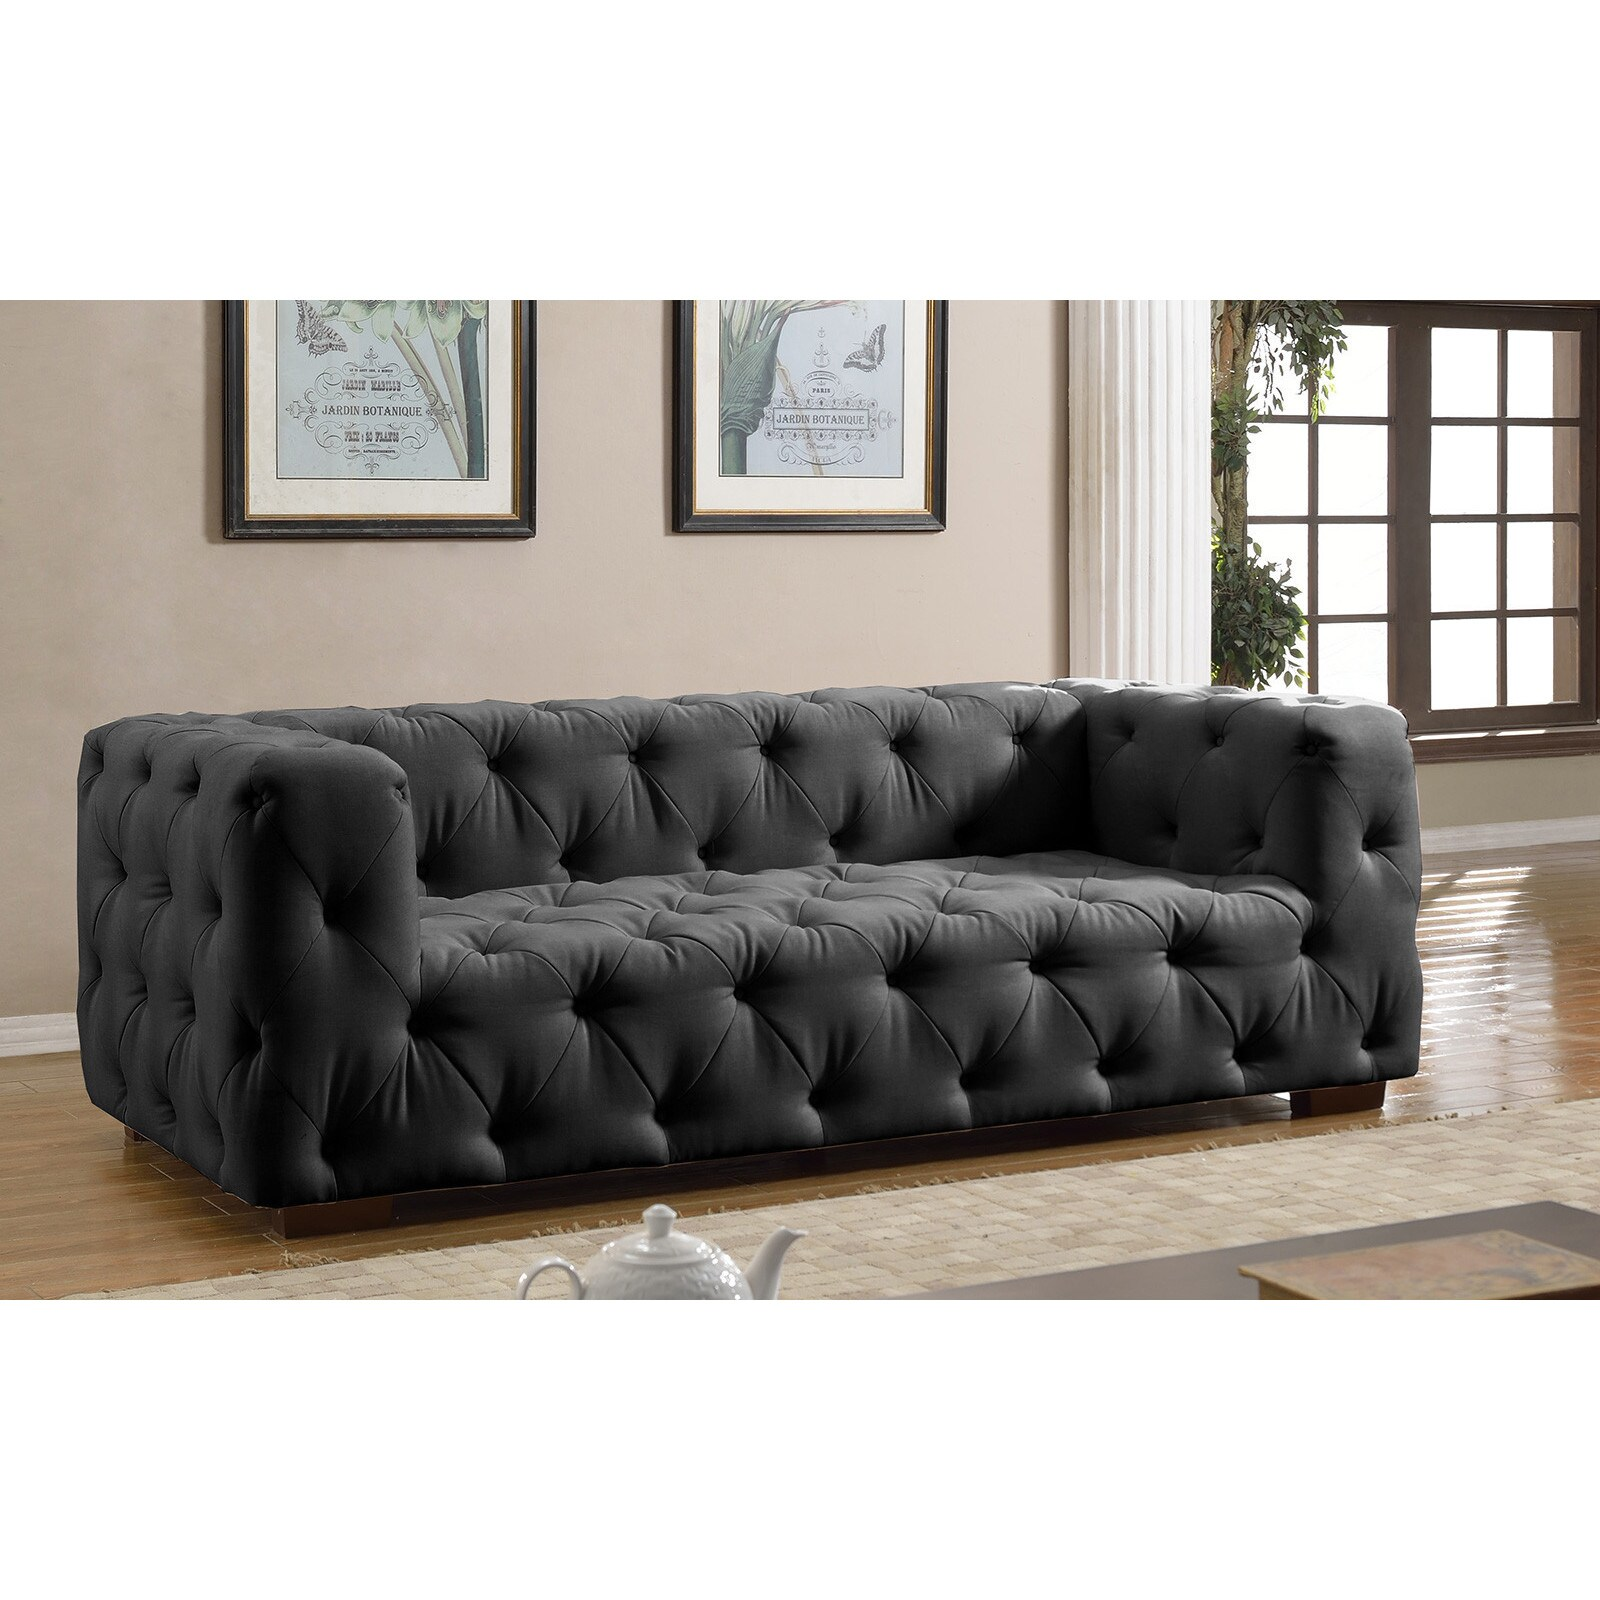 Luxurious Modern Large Tufted Linen Fabric Sofa Free Shipping  ~ Oversized Chesterfield Sofa